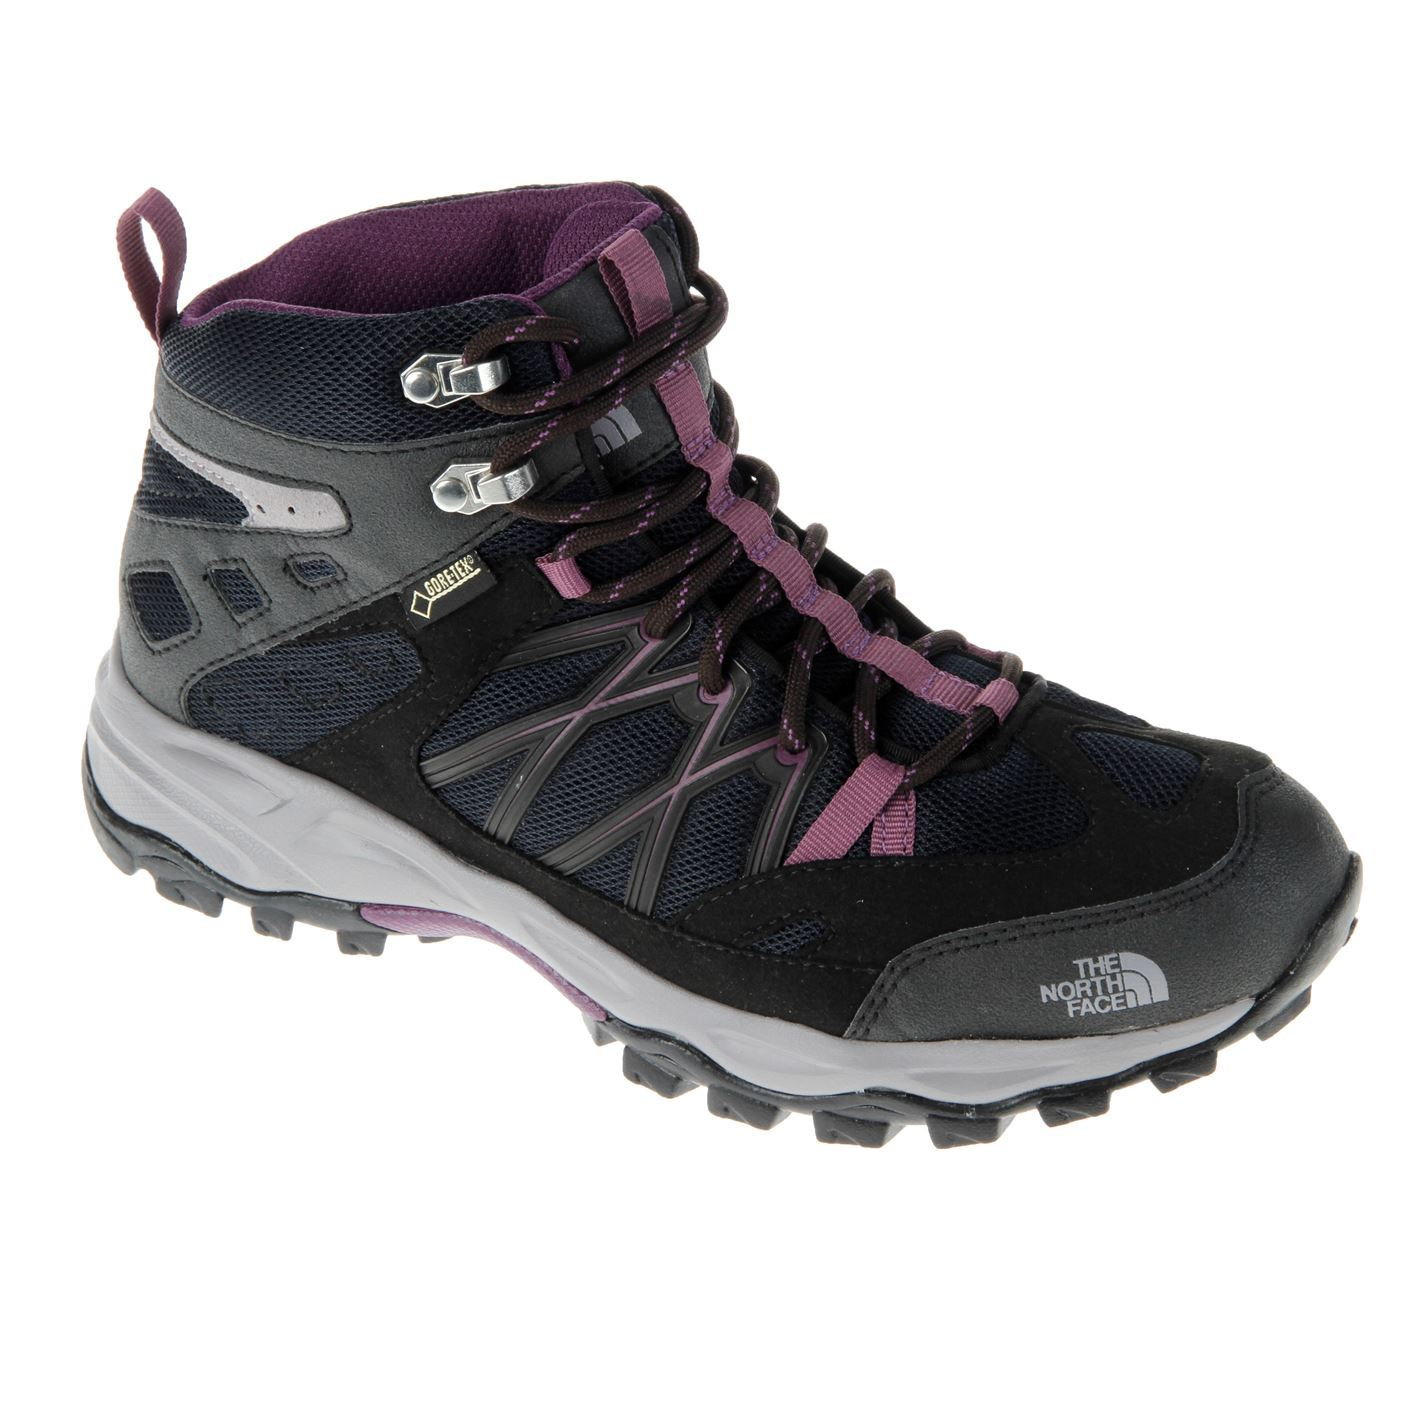 Brilliant The North Face Ultra Fastpack II Mid GTX Hiking Boot - Womenu0026#39;s | Backcountry.com